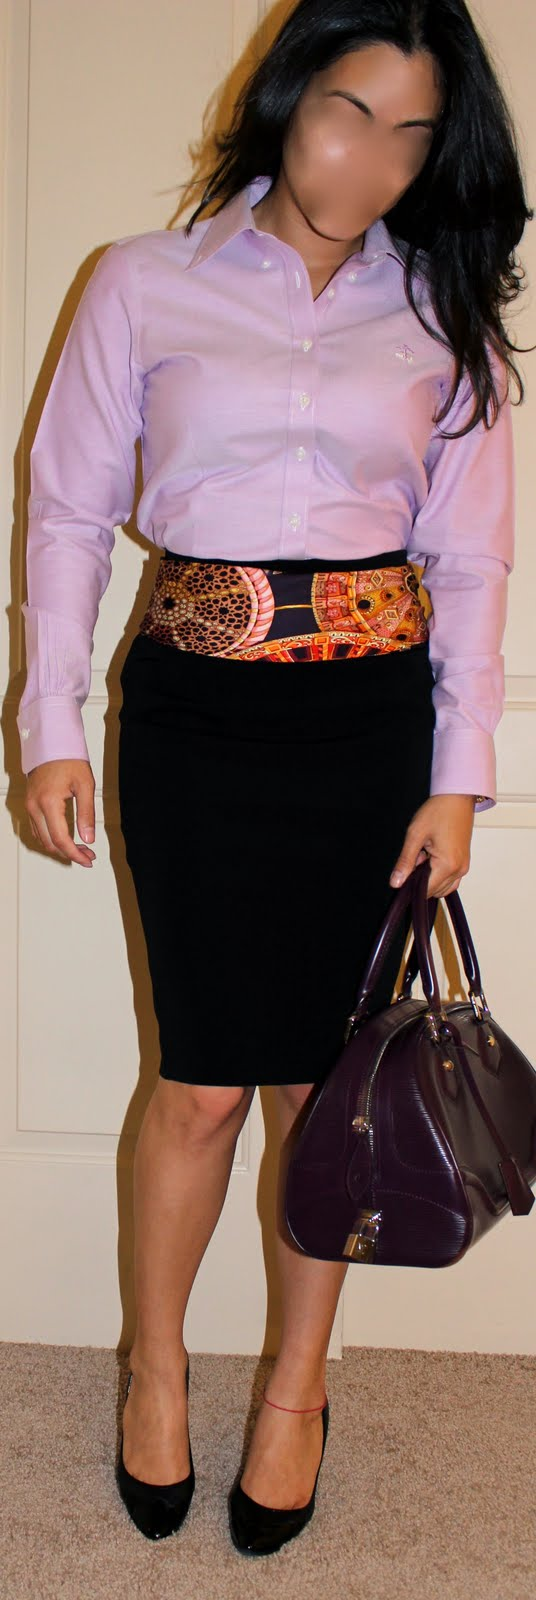 Ann Taylor skirt, Brooks Brothers No-Iron Top, Hermes scarf, Louis Vuitton Bag